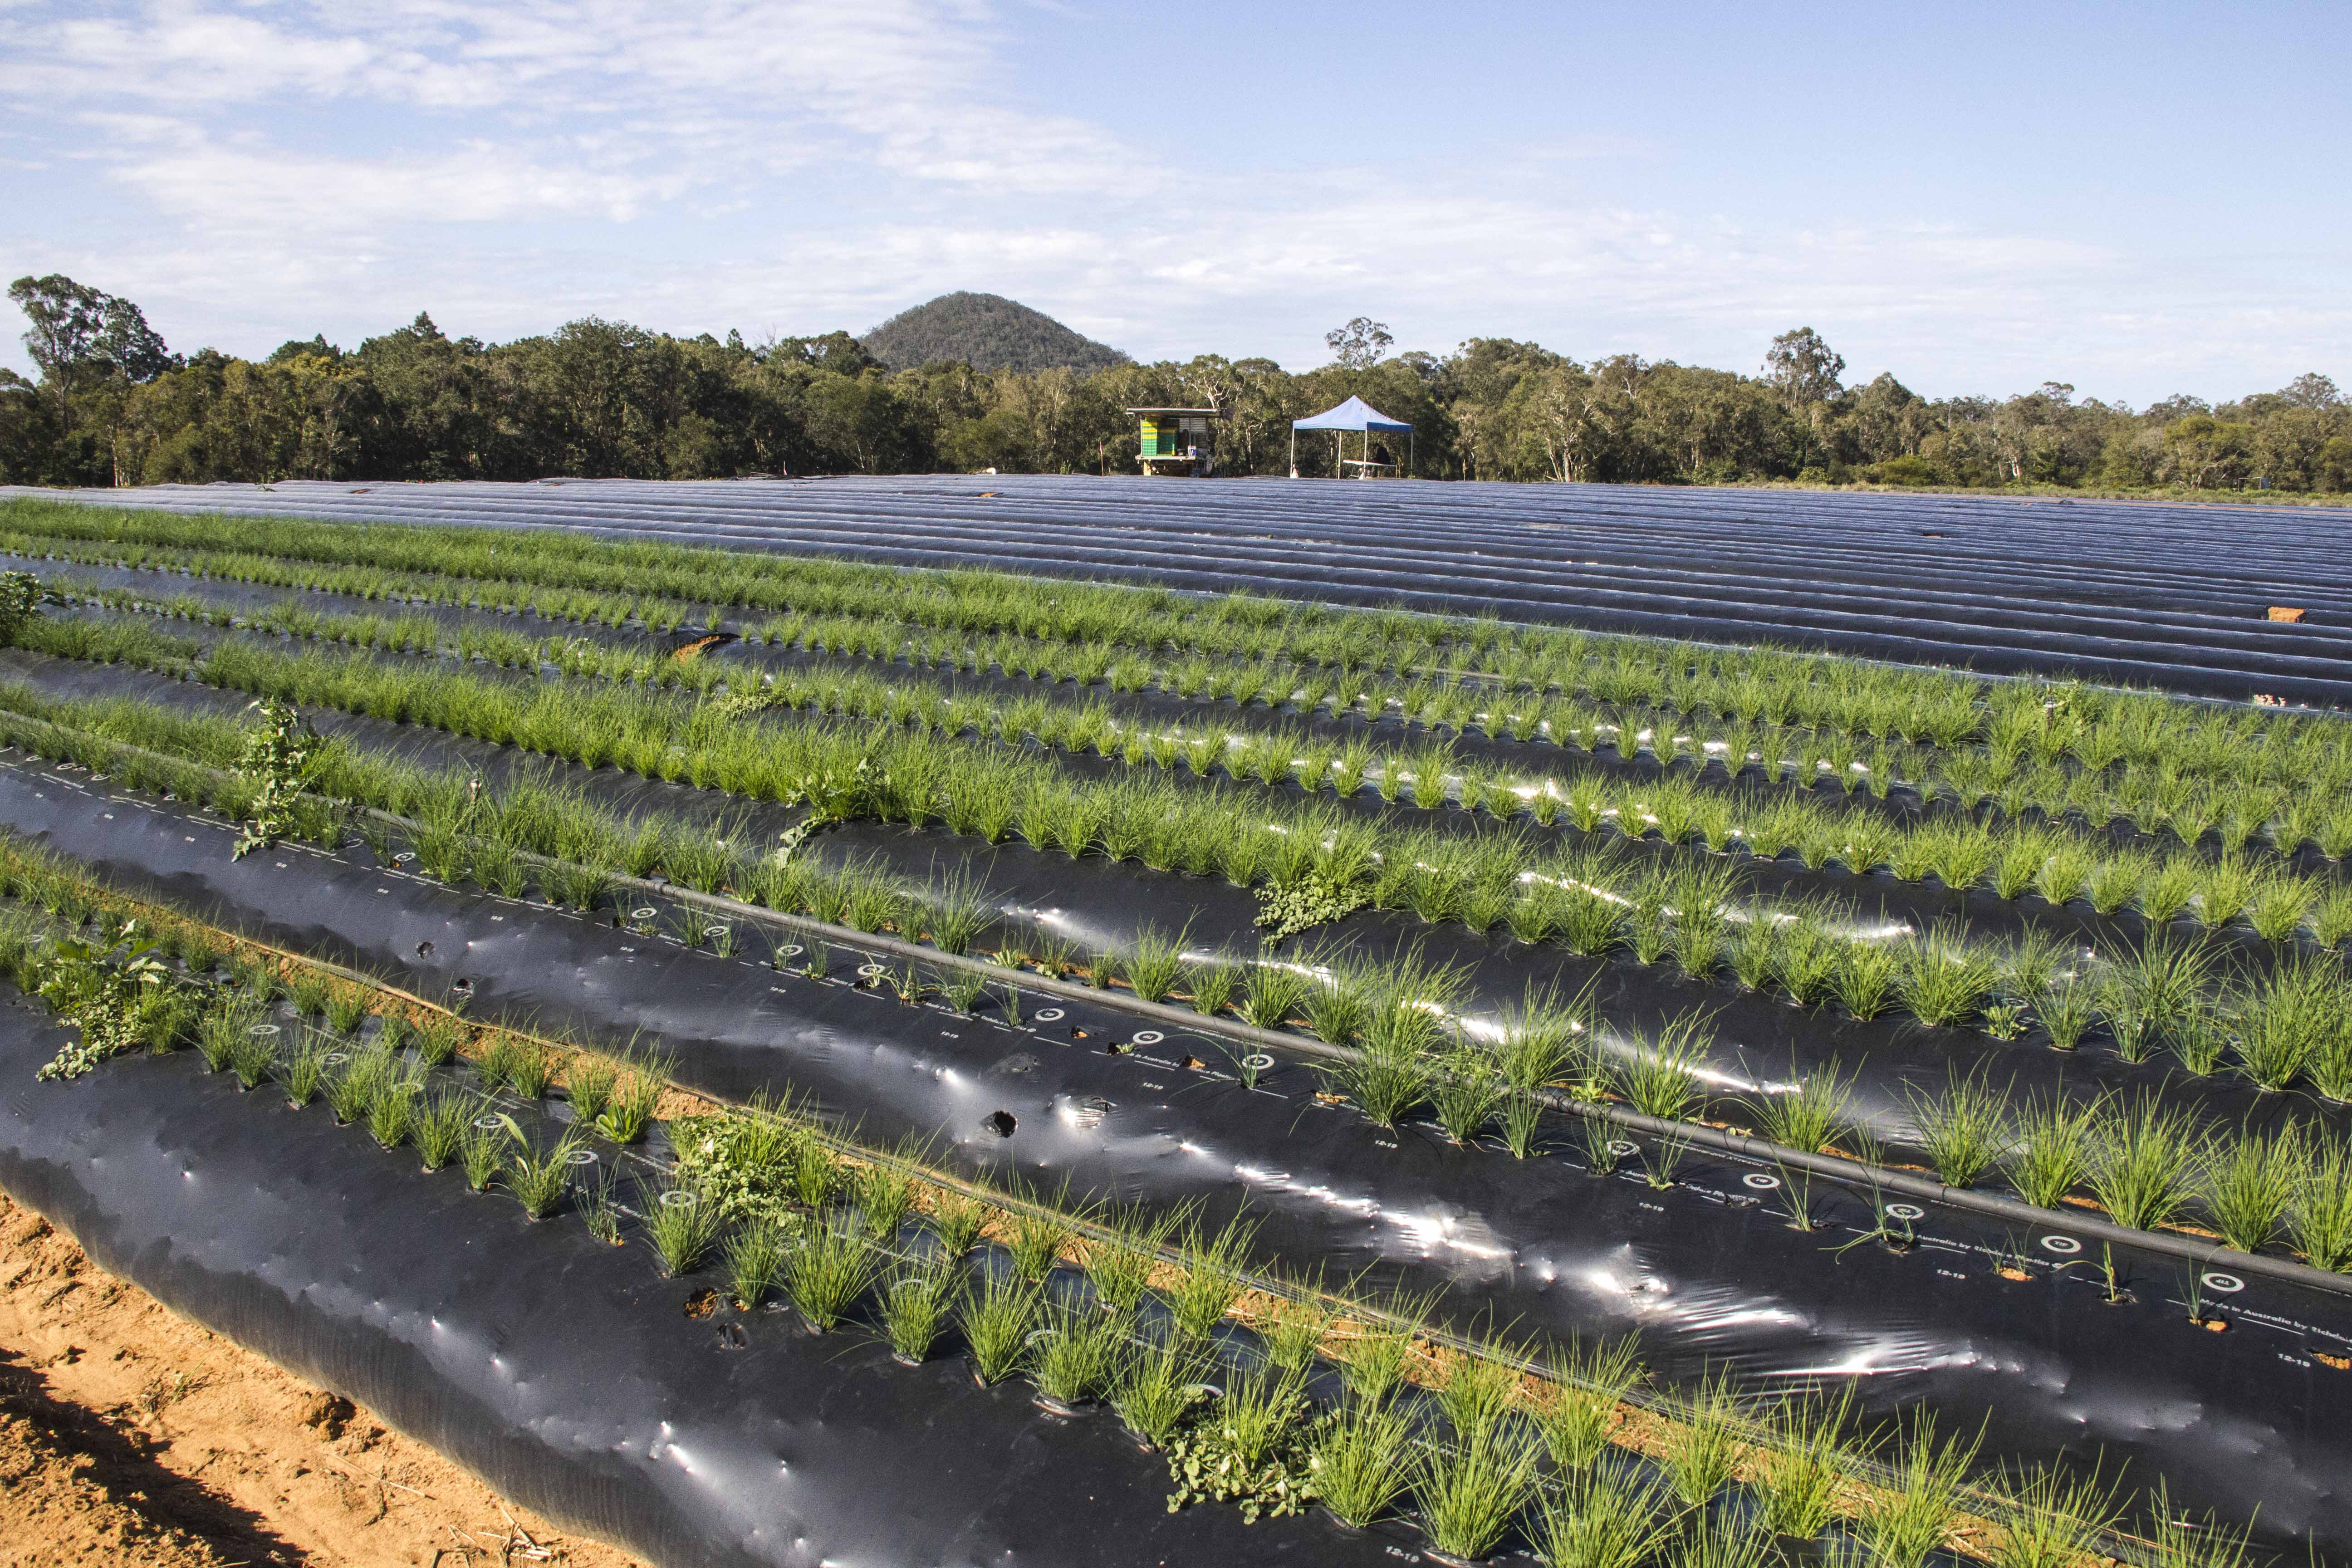 WELCOME  FARMGATE OPEN SAT & SUN 9-5  PYO STRAWBERRIES =     pe pd VAIN Le os ORT www.luvaberry.com.au 4 \ AT 7